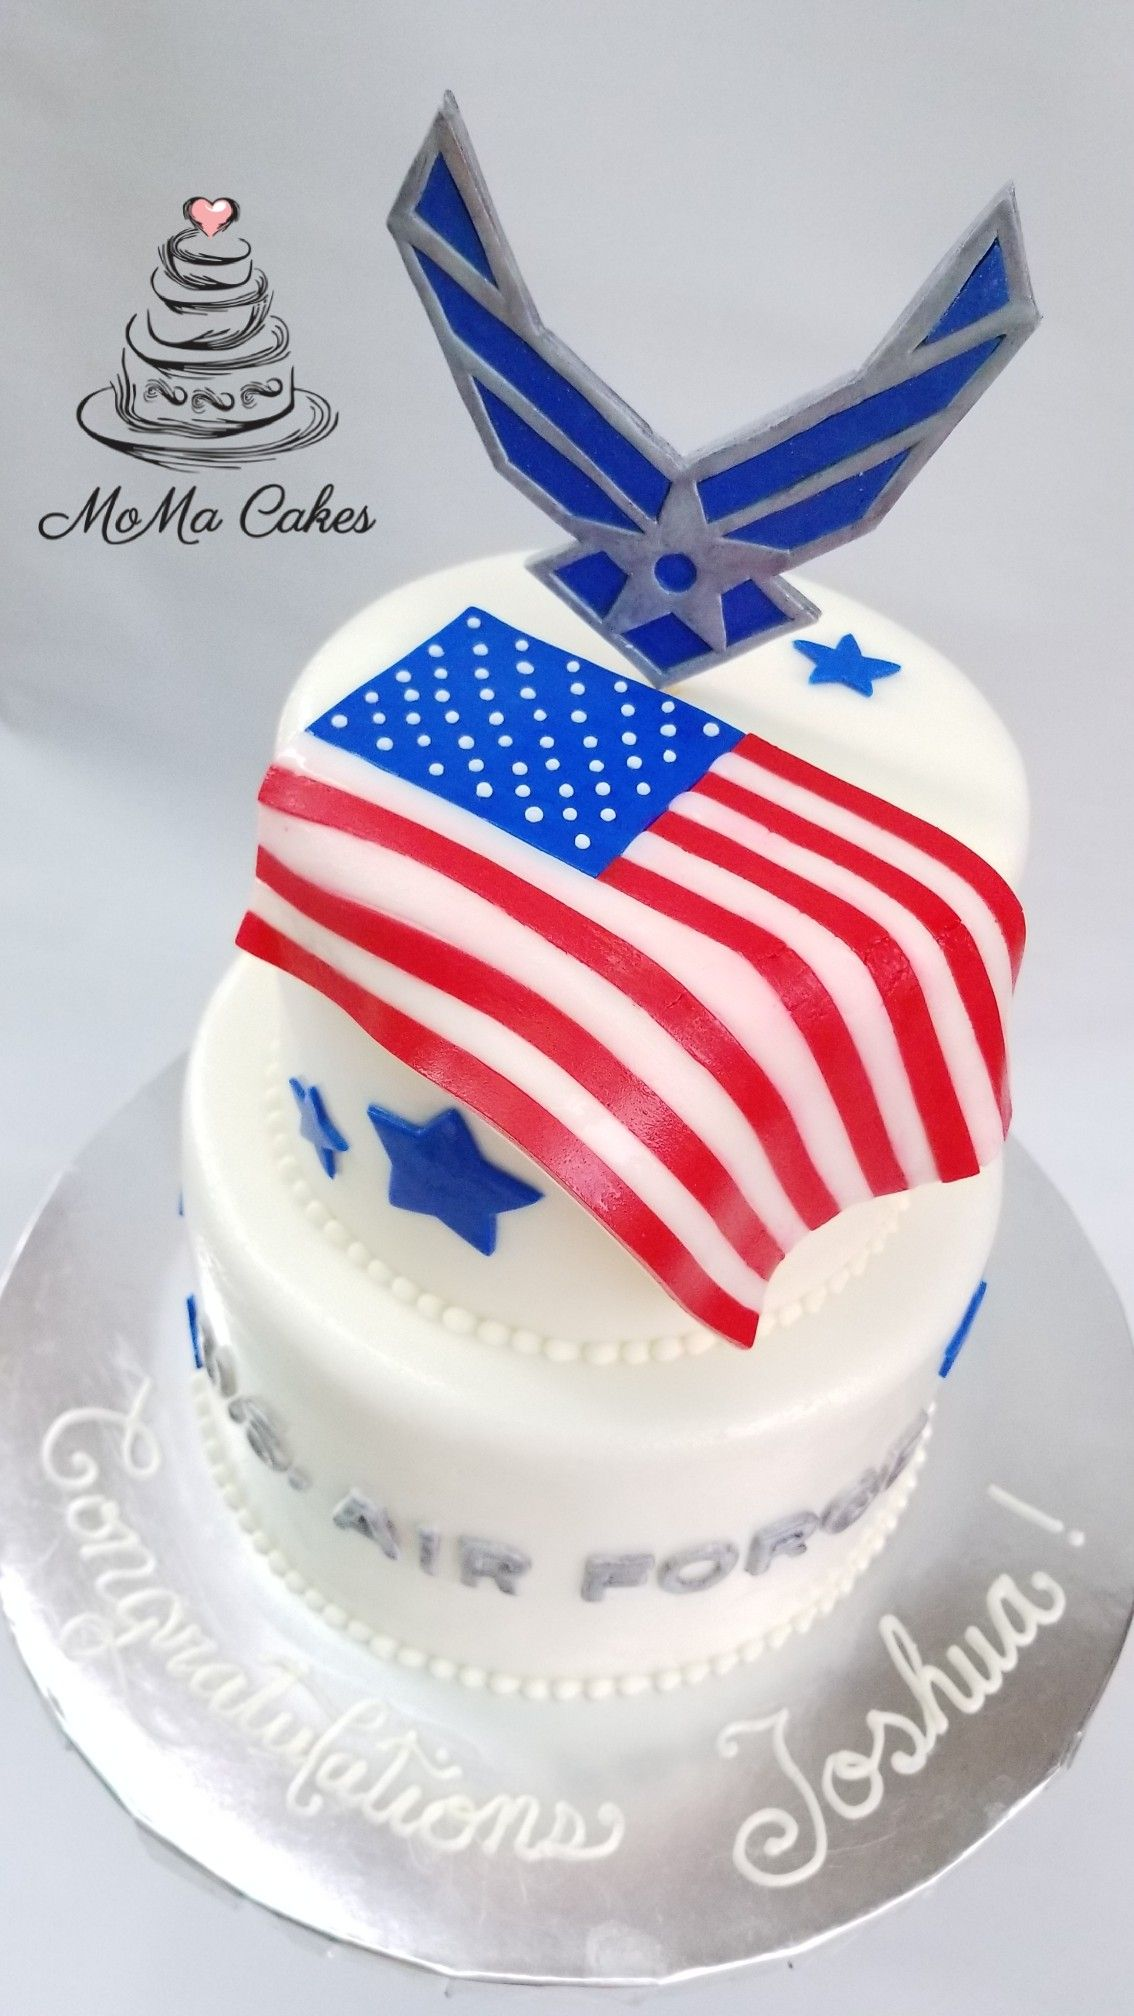 U.S. Air Force graduation cake by MoMa Cakes. | MoMa Cakes ...